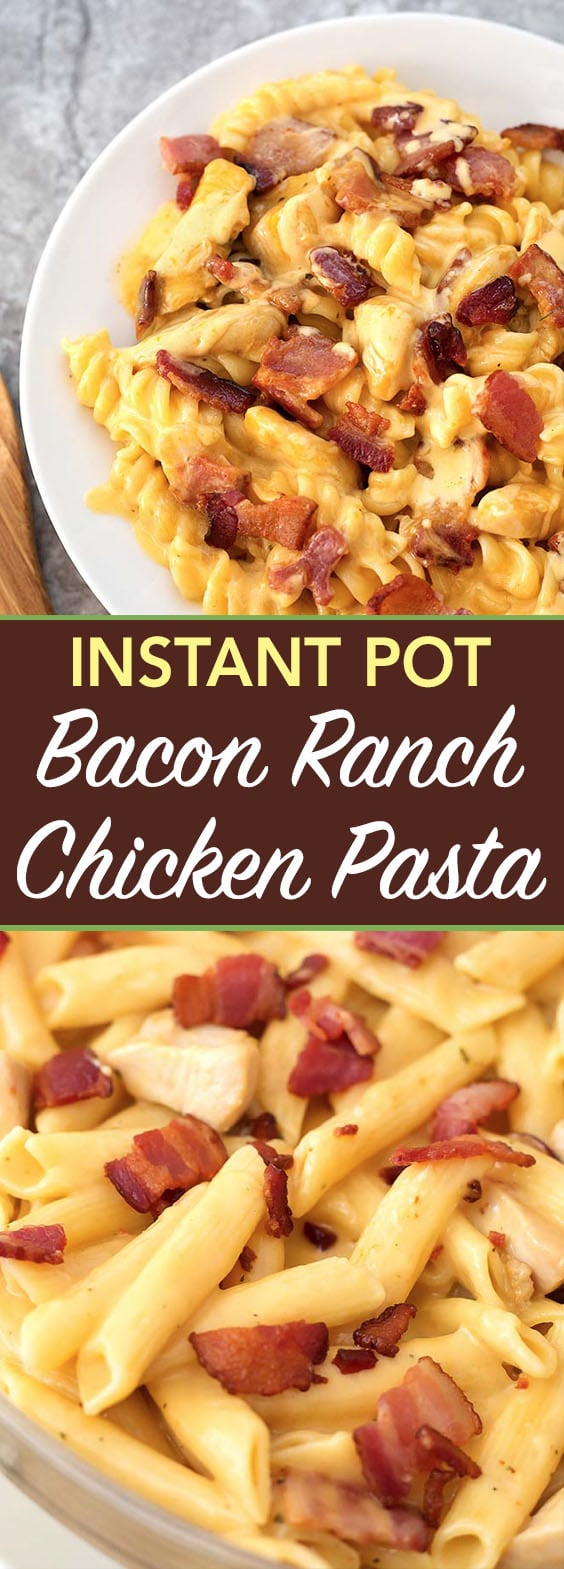 Instant Pot Chicken Bacon Ranch Pasta is a tasty cheesy pasta dinner with chicken and ranch dressing flavor, made in your electric pressure cooker. Instant Pot recipes by simplyhappyfoodie.com #instantpotchickenbaconranchpasta #instantpotchickenpasta